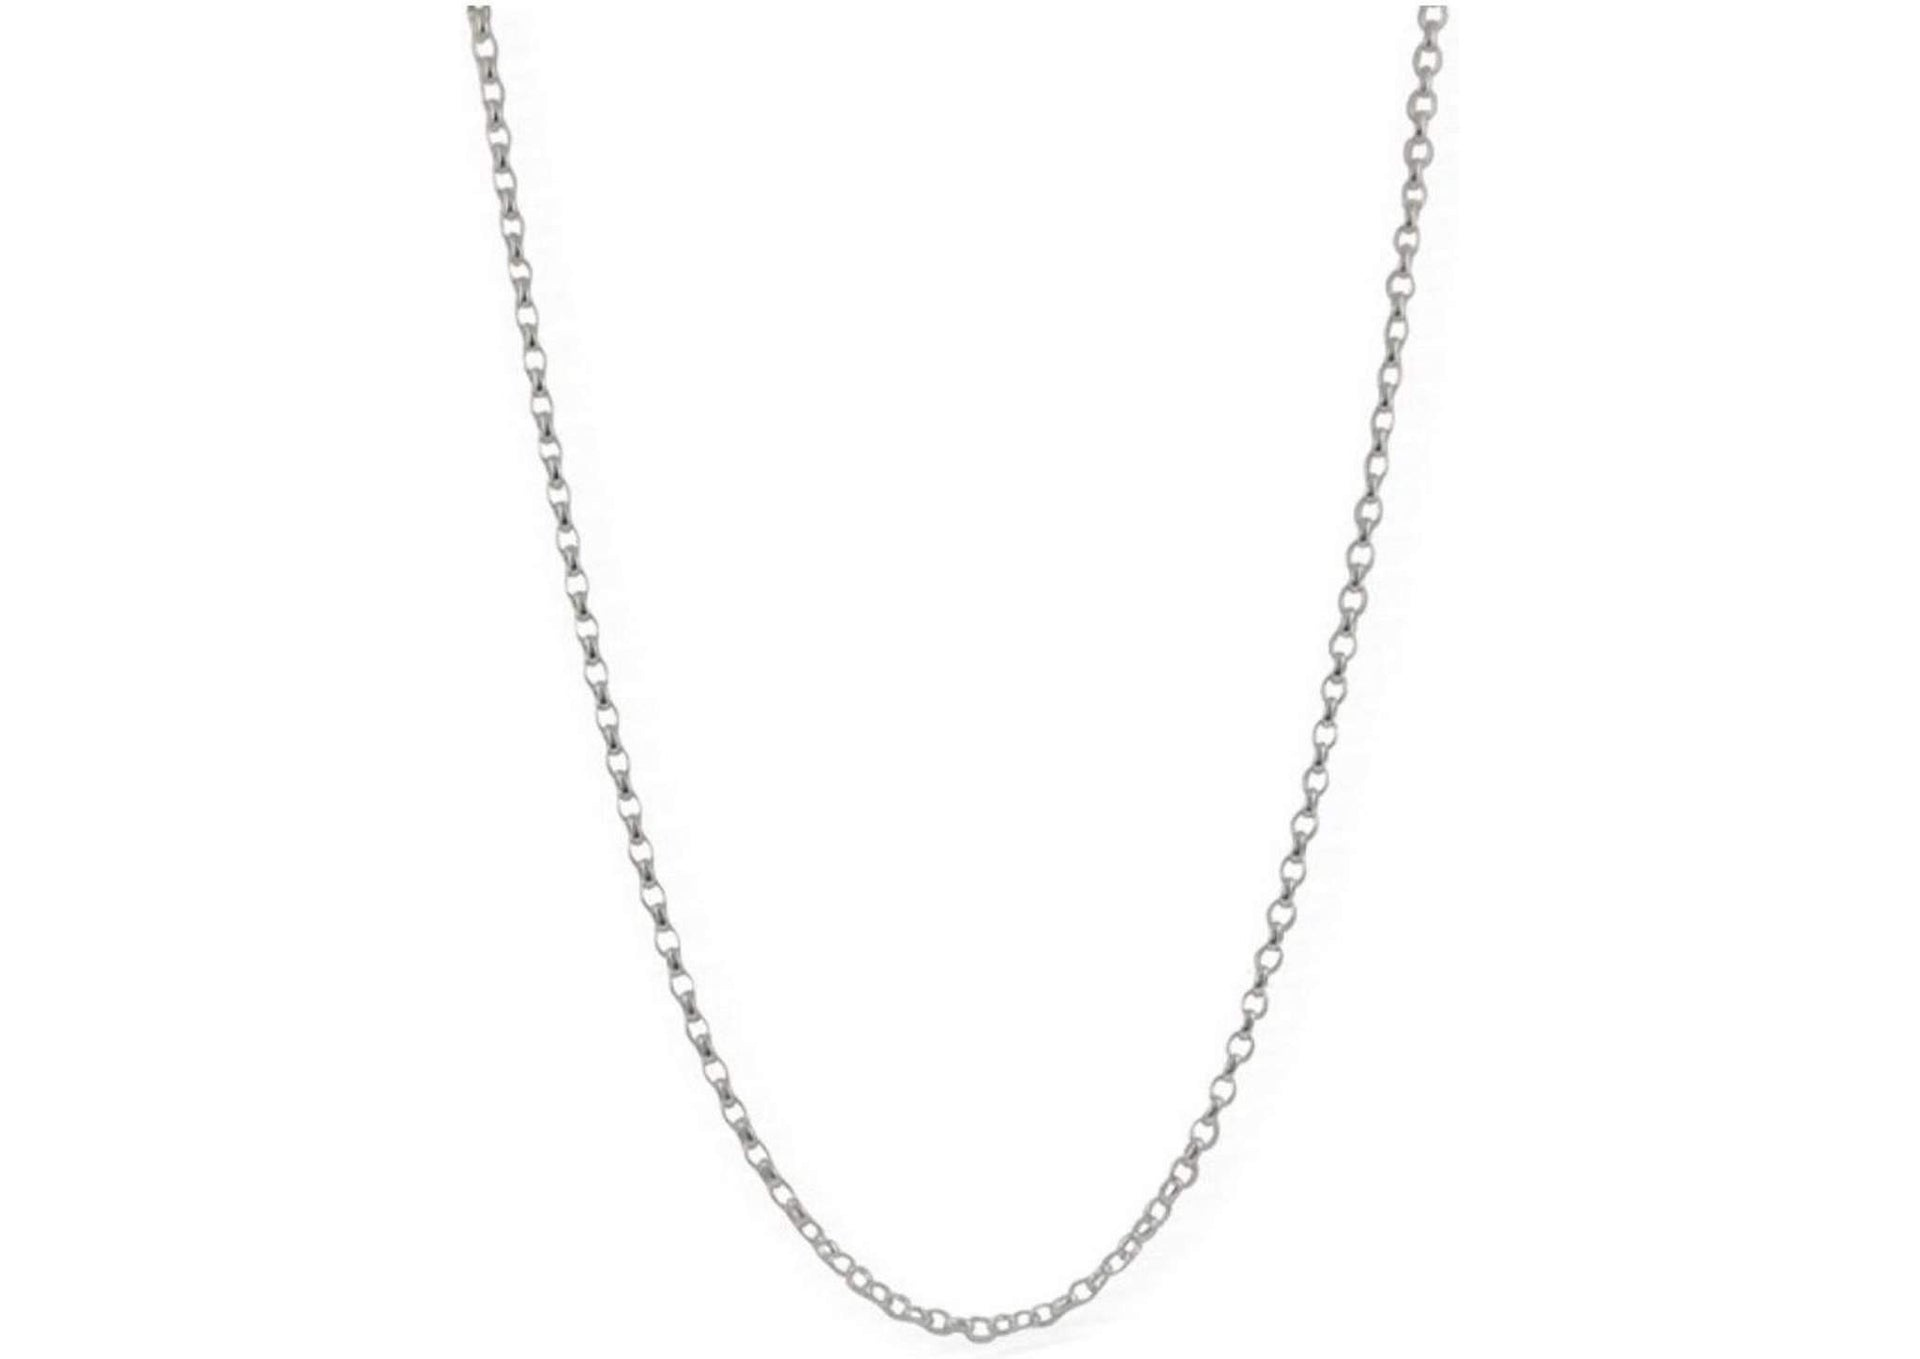 The Sterling Silver Chain   - Jens Hansen - 1